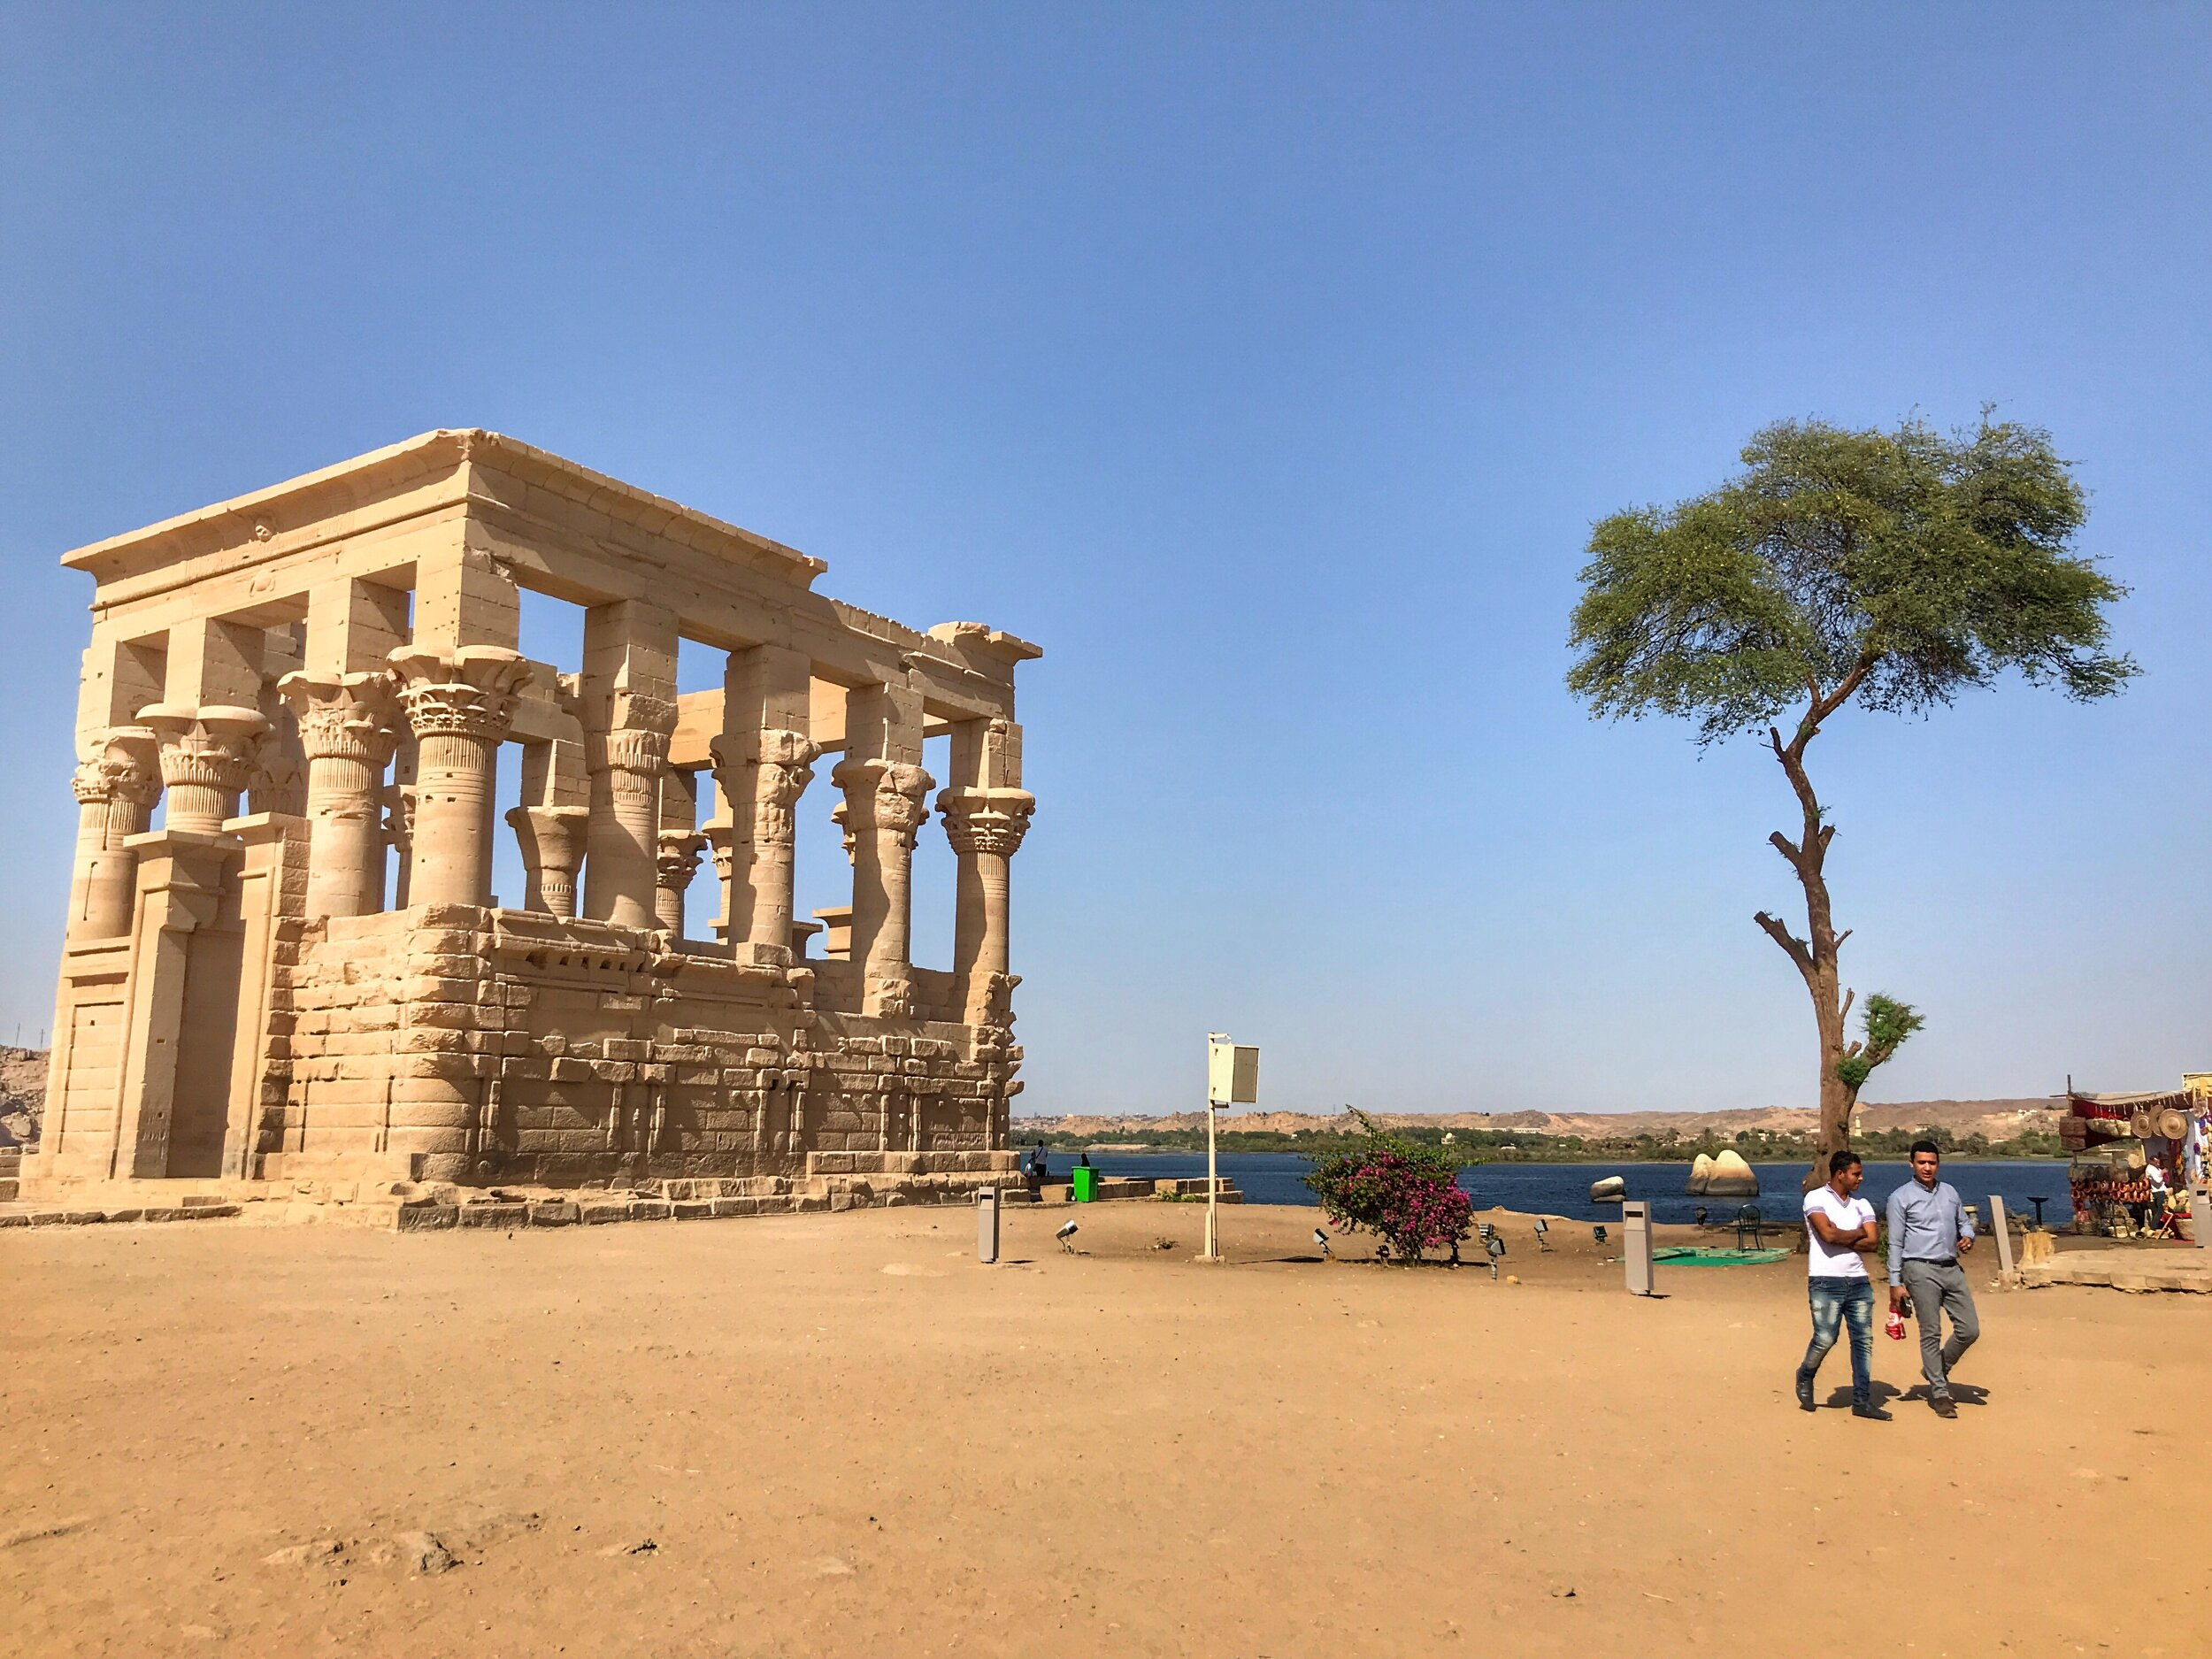 The Kiosk of Trajan is an iconic structure at Philae